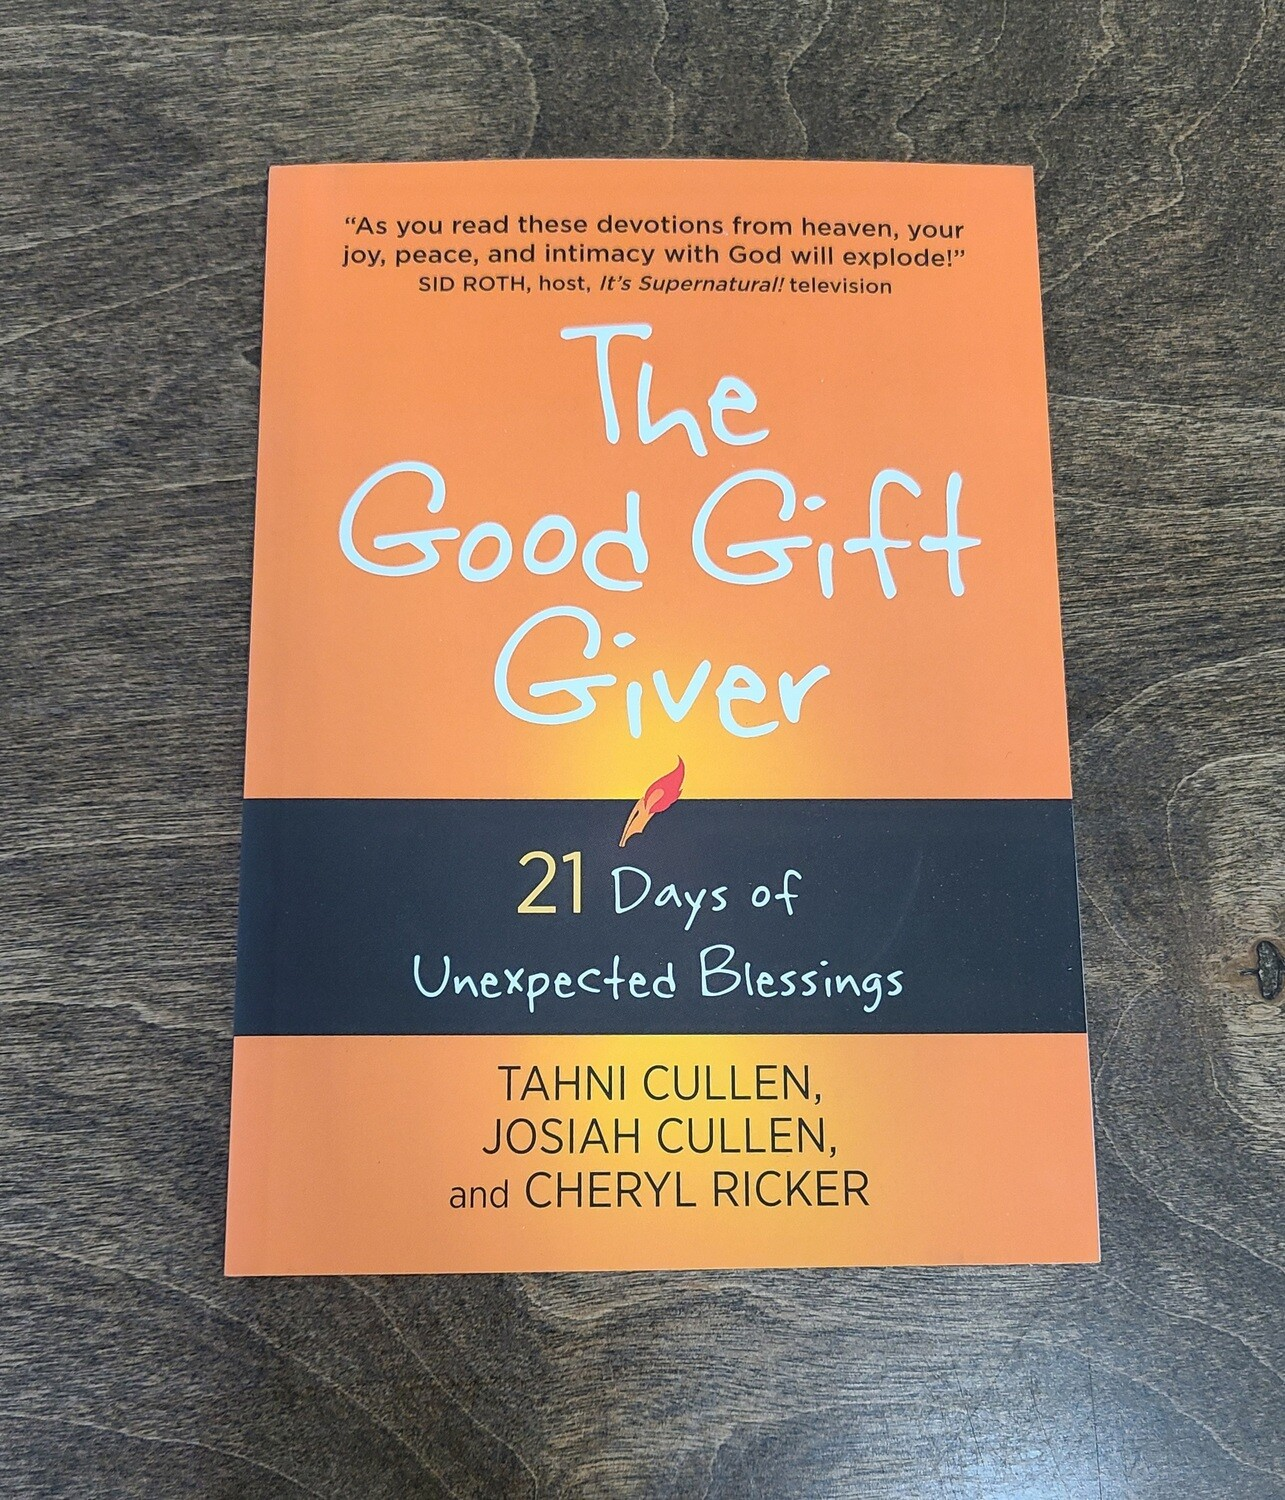 The Good Gift Giver: 21 Days of Unexpected Blessings by Tahni Cullen, Josiah Cullen, and Cheryl Ricker